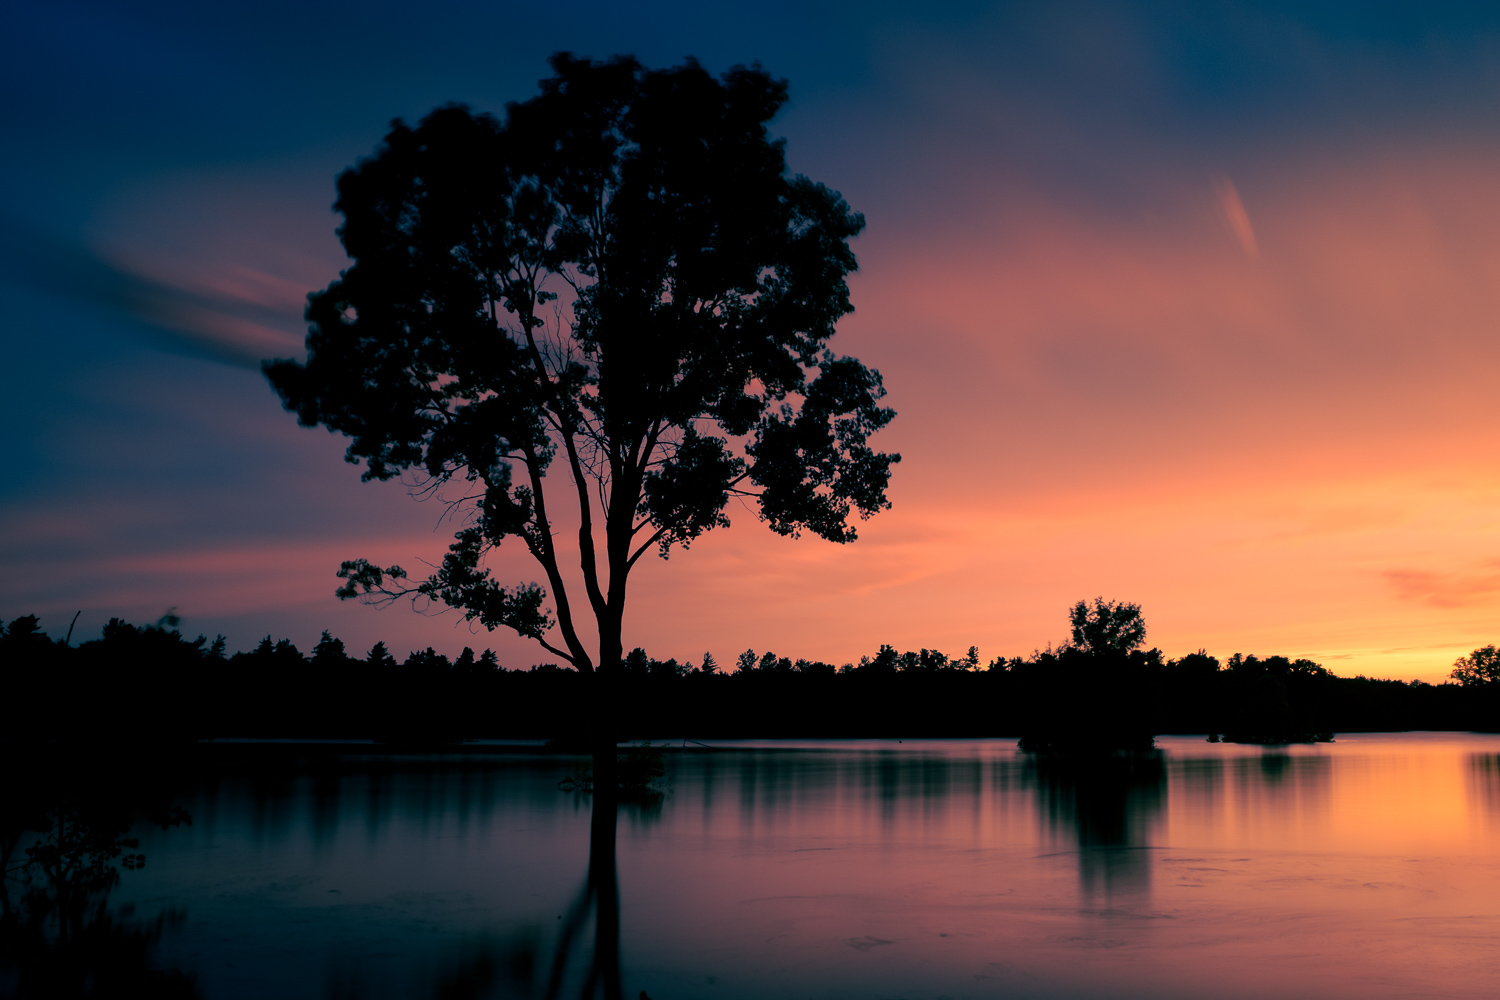 Sunset on a lake with color grading